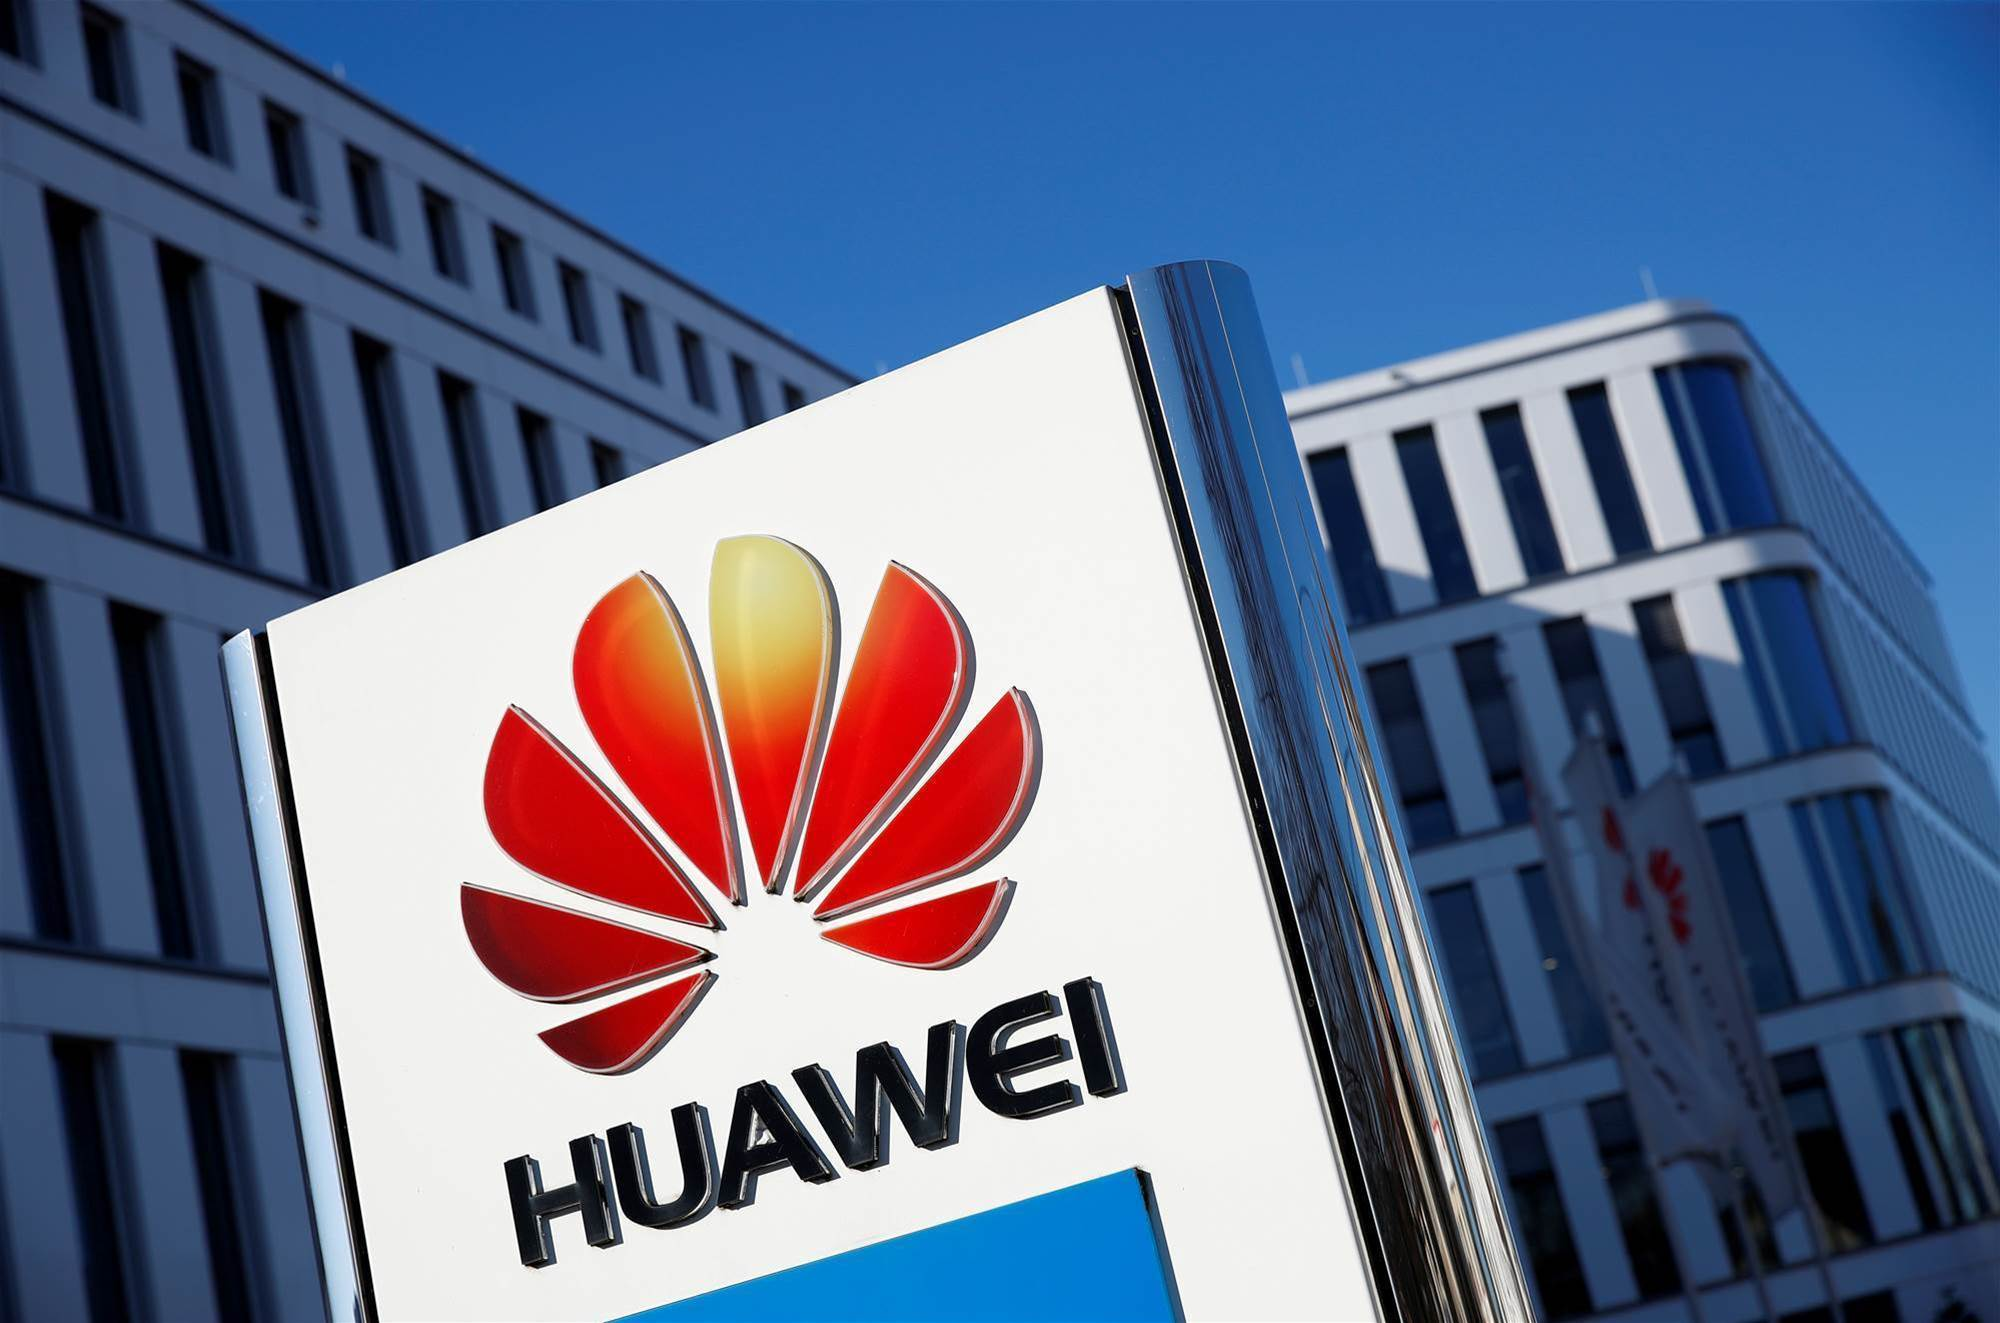 Huawei calls for common cybersecurity standards amidst concerns